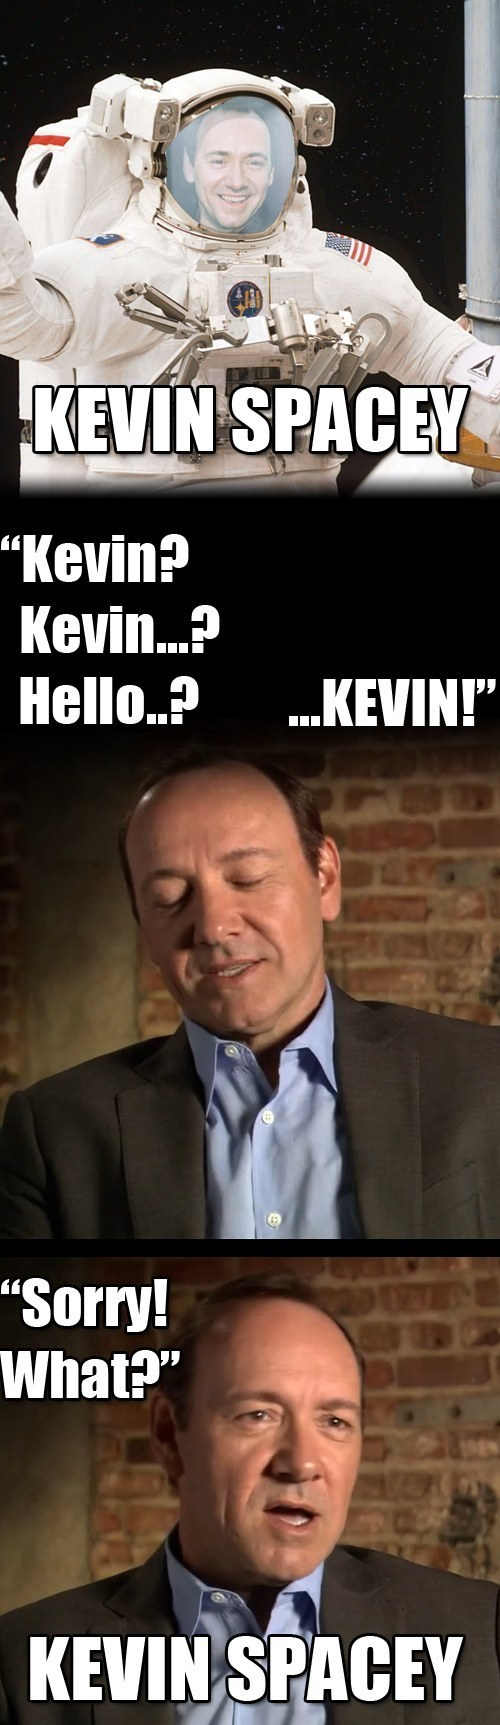 surname,spacey,variations on a theme,literalism,kevin spacey,double meaning